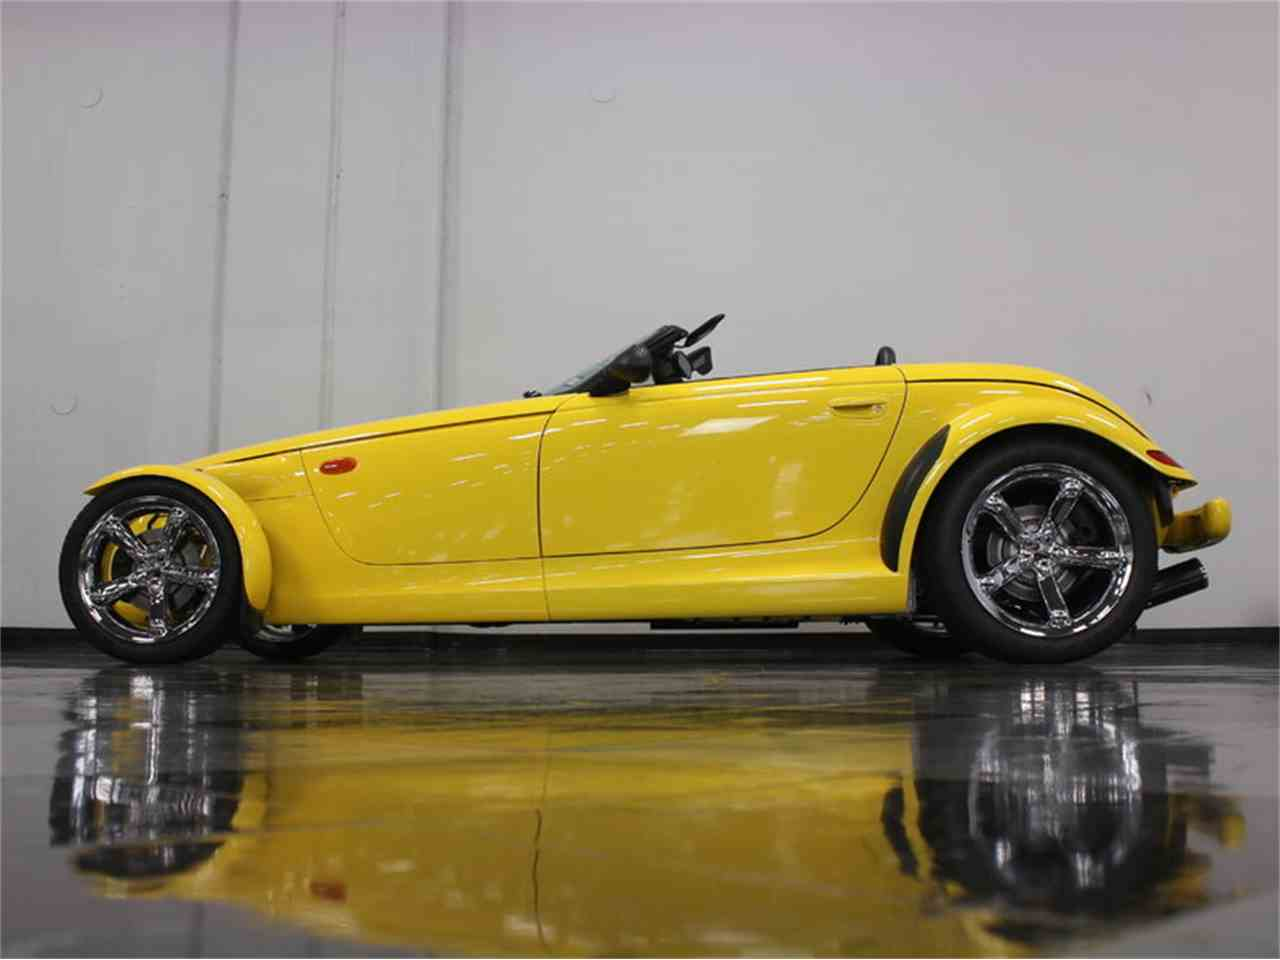 Large Picture of 1999 Plymouth Prowler located in Texas - $37,995.00 Offered by Streetside Classics - Dallas / Fort Worth - J56O